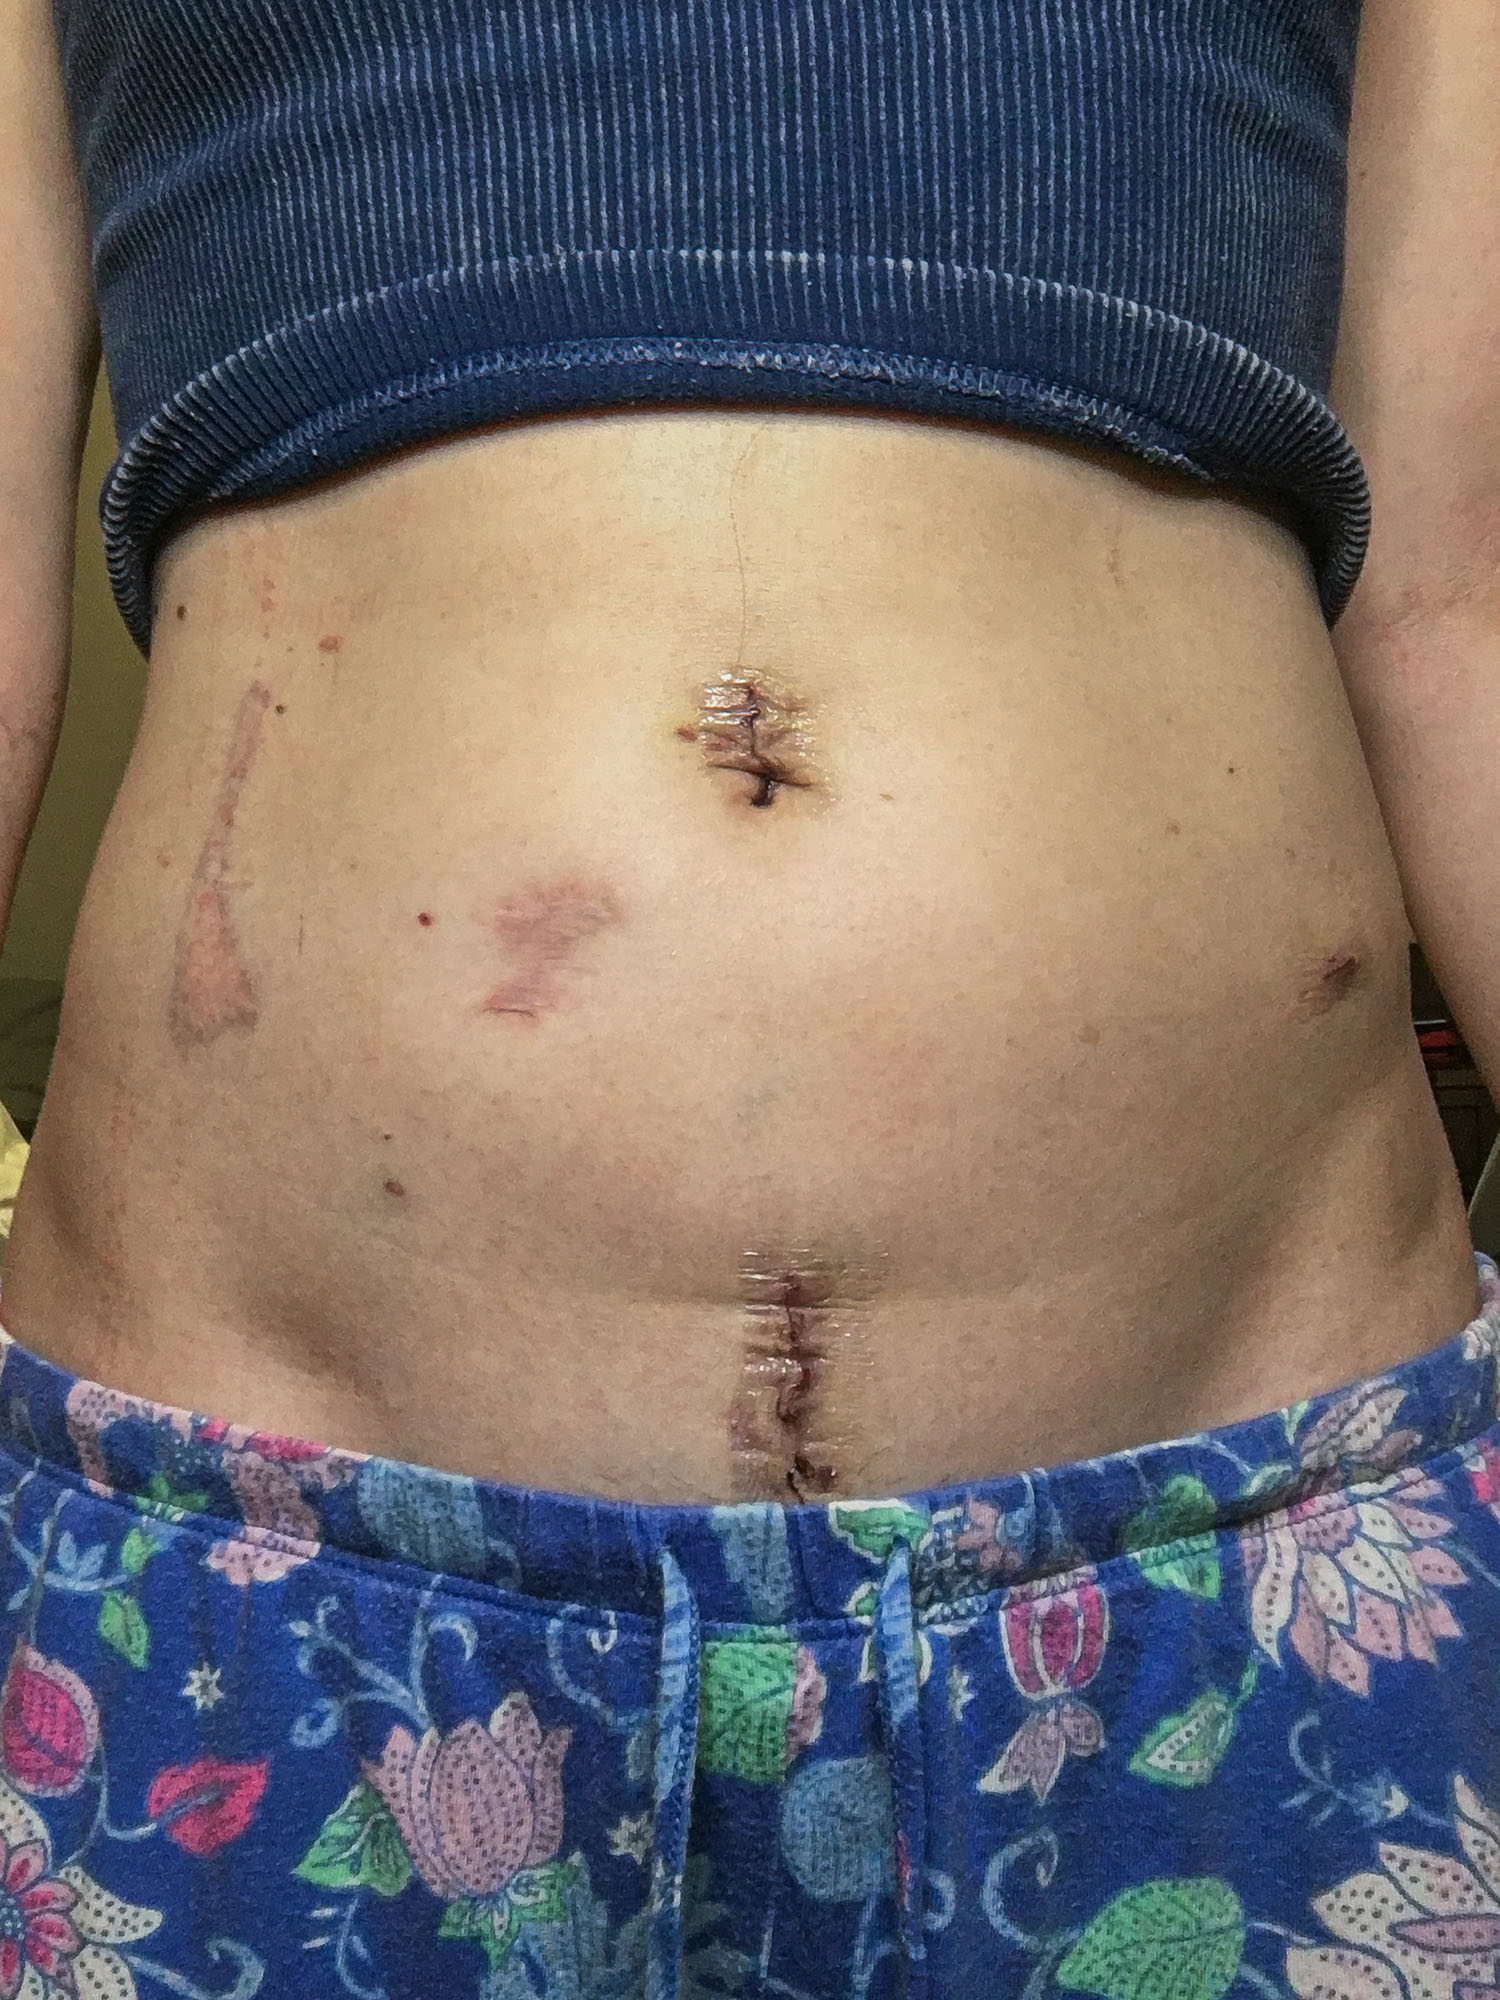 A close up of the author's abdomen after going through surgery for a small bowel obstruction.